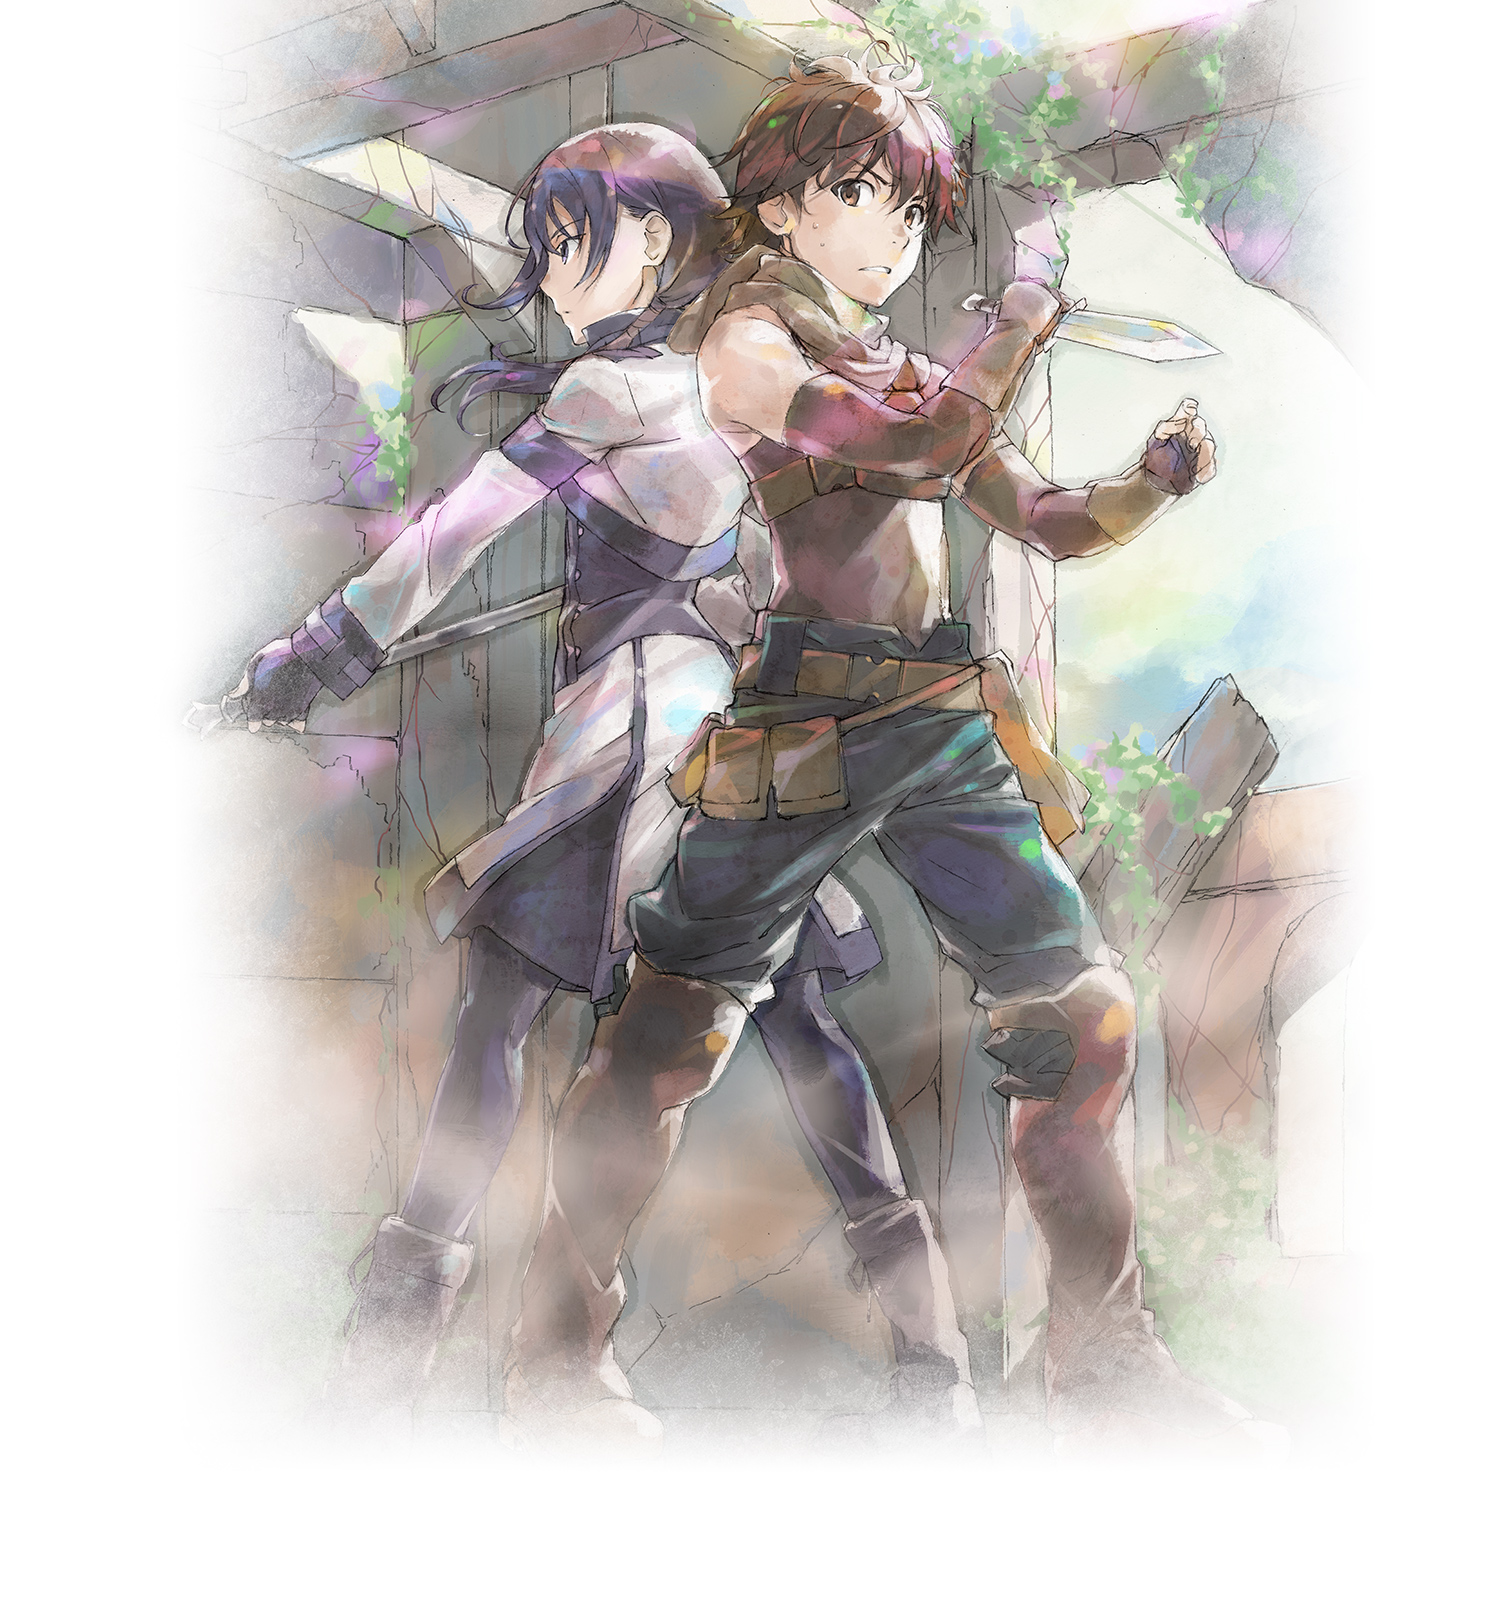 Spoilers Hai To Gensou No Grimgar Episode 7 Discussion